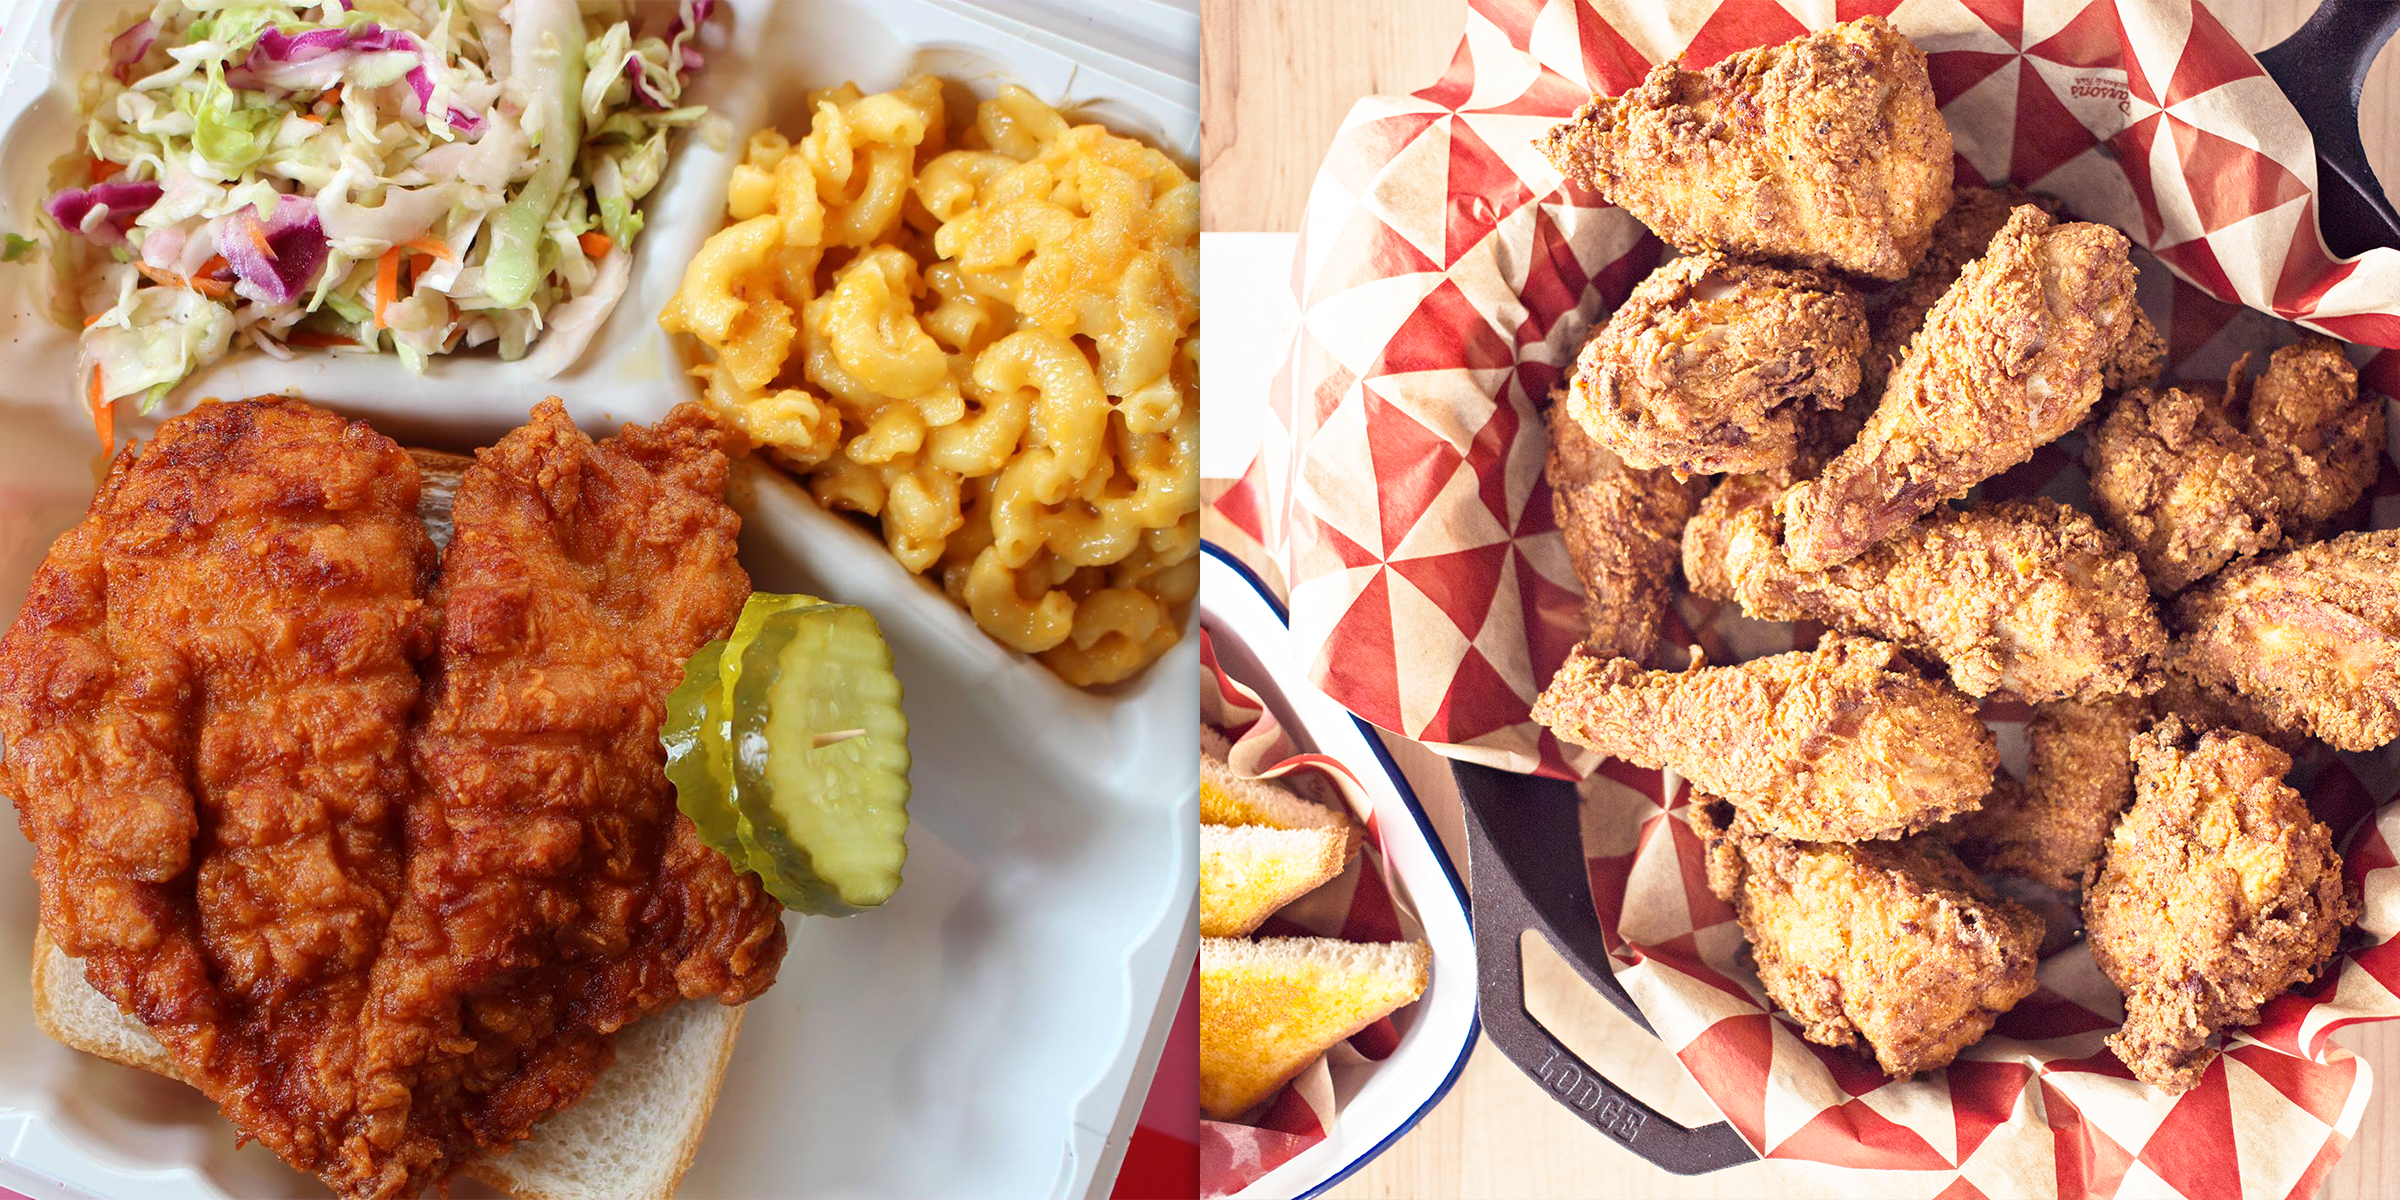 These restaurants have the best fried chicken in America